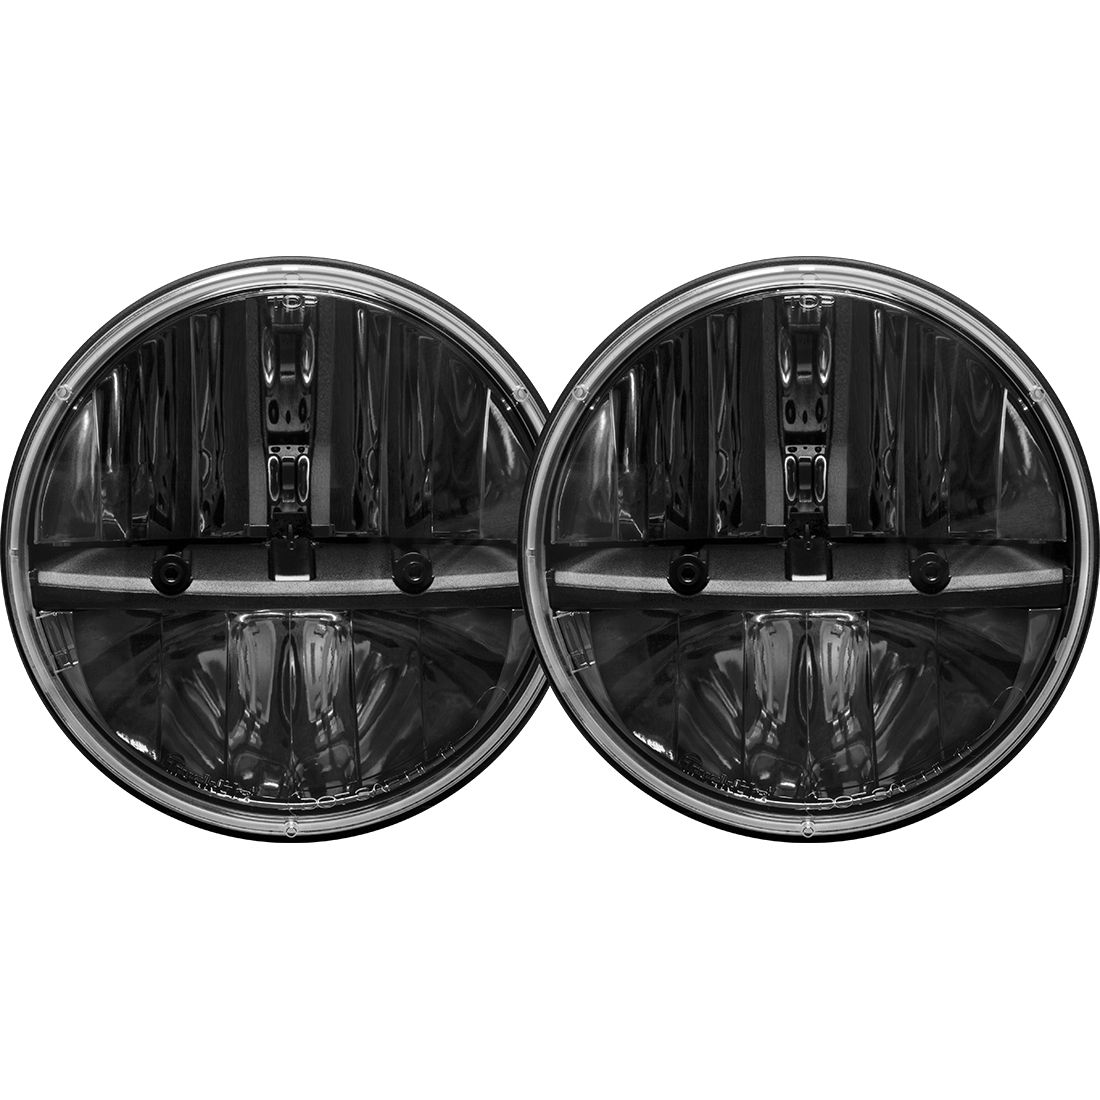 Rigid Industries 7in Round Headlight Non-JK